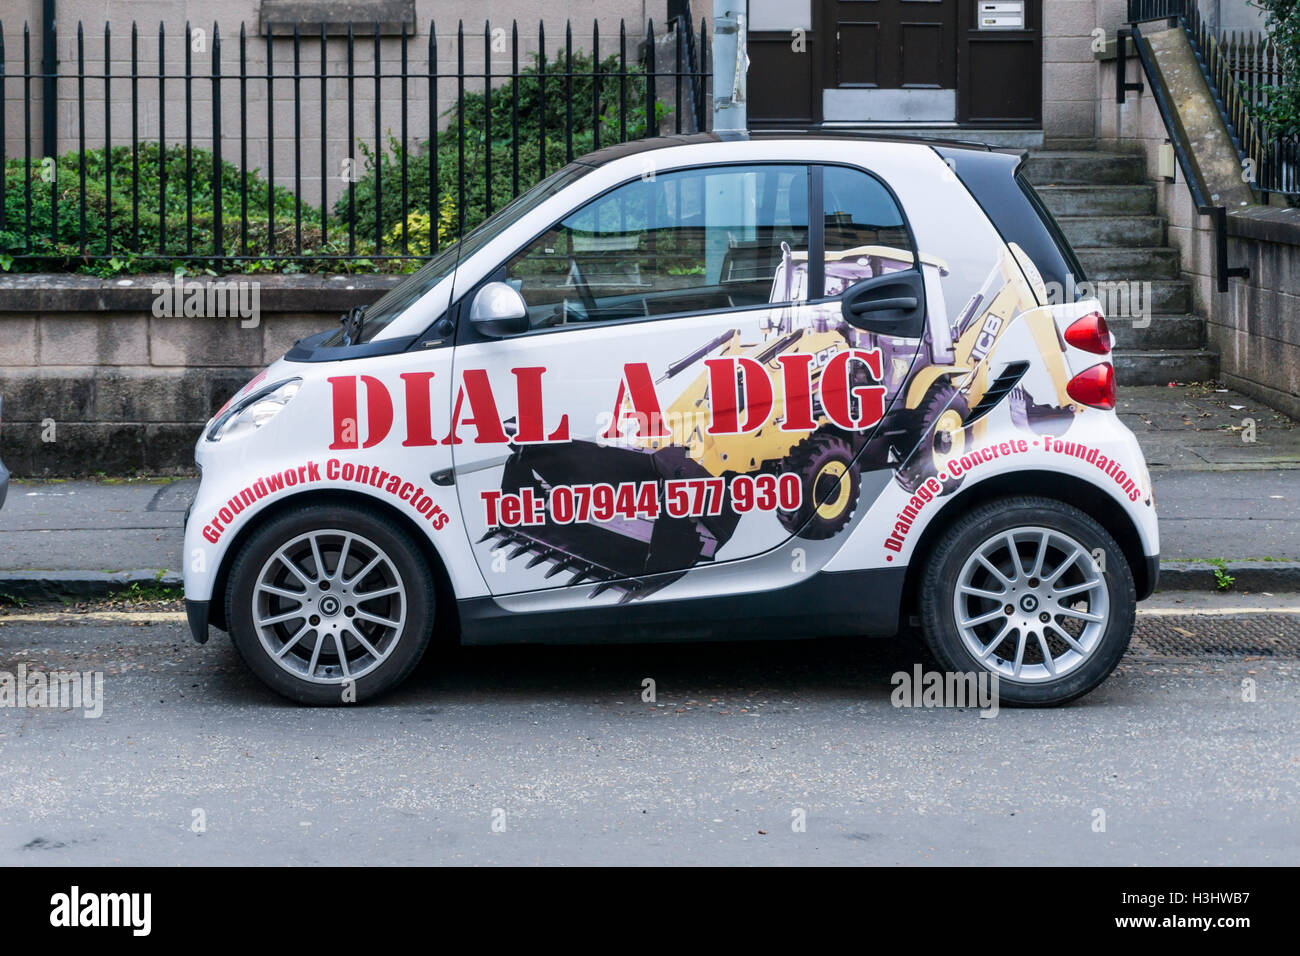 Advert for Dial a Dig groundwork contractors on the side of a Smart Fortwo car. - Stock Image